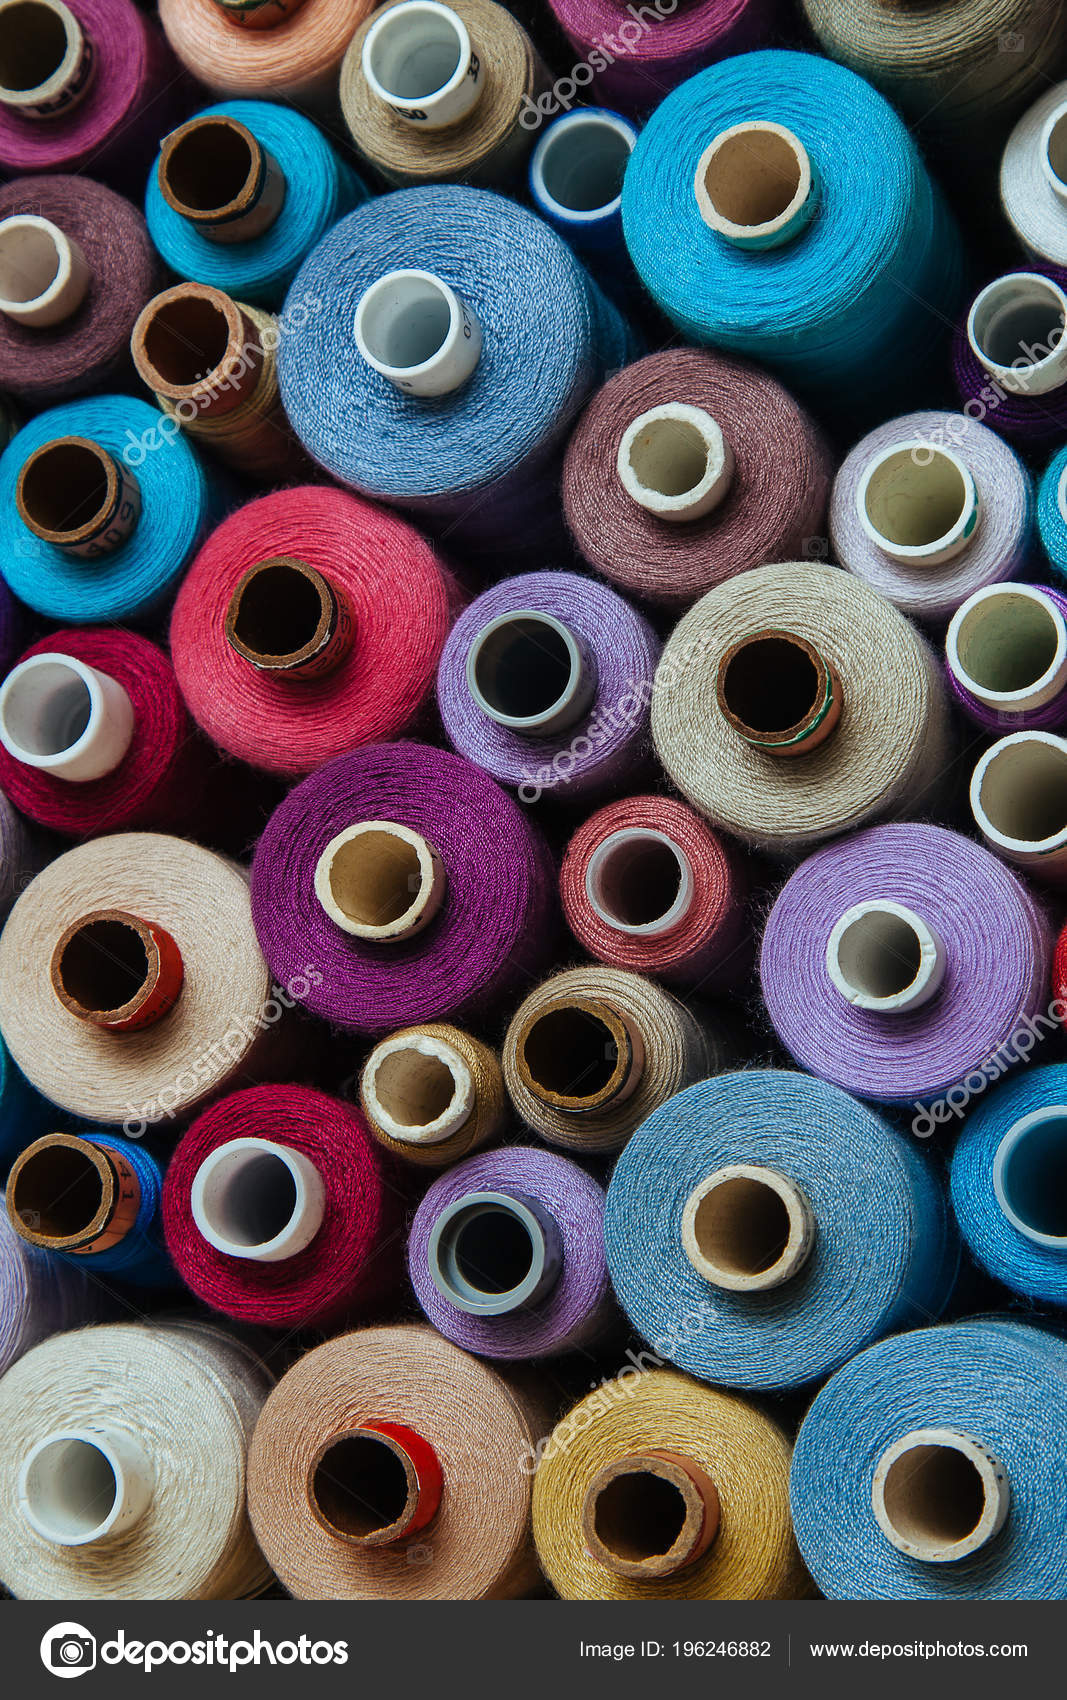 b371afd26b191 A set of threads of different colors. Many threads for sewing and  needlework are different in color and size. Multicolored palette of  threads.– stock image